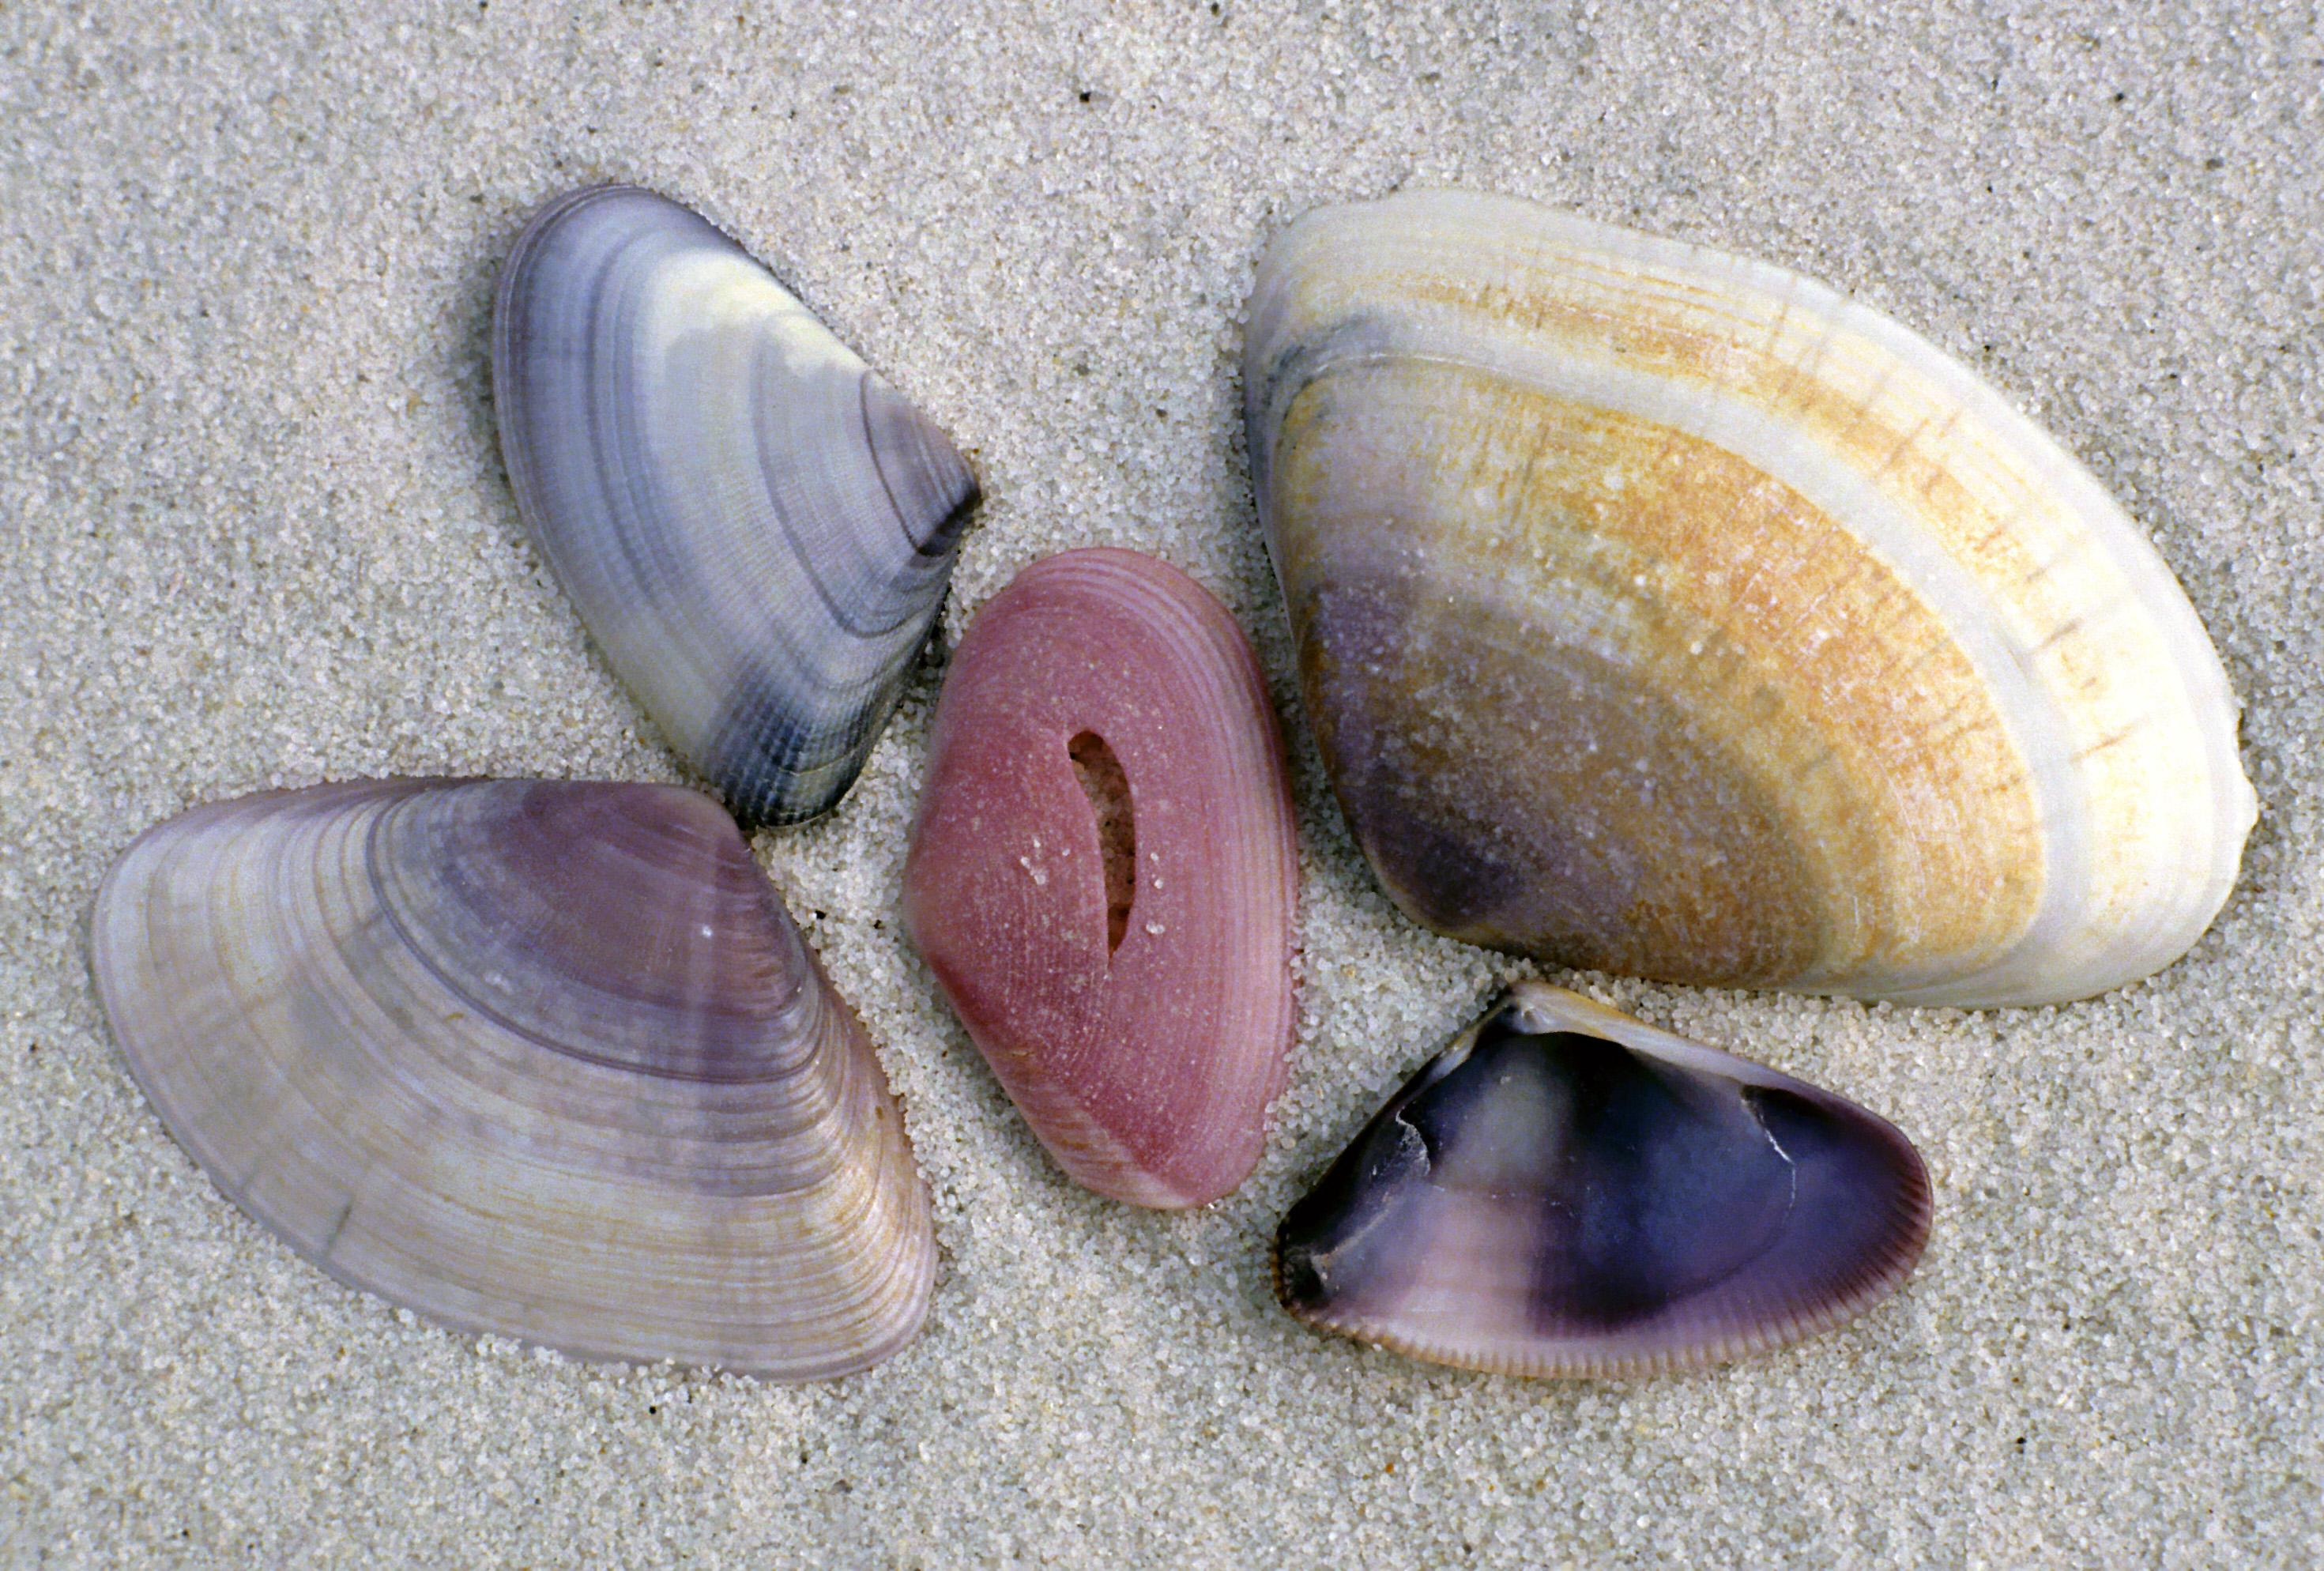 Shell and sand swap